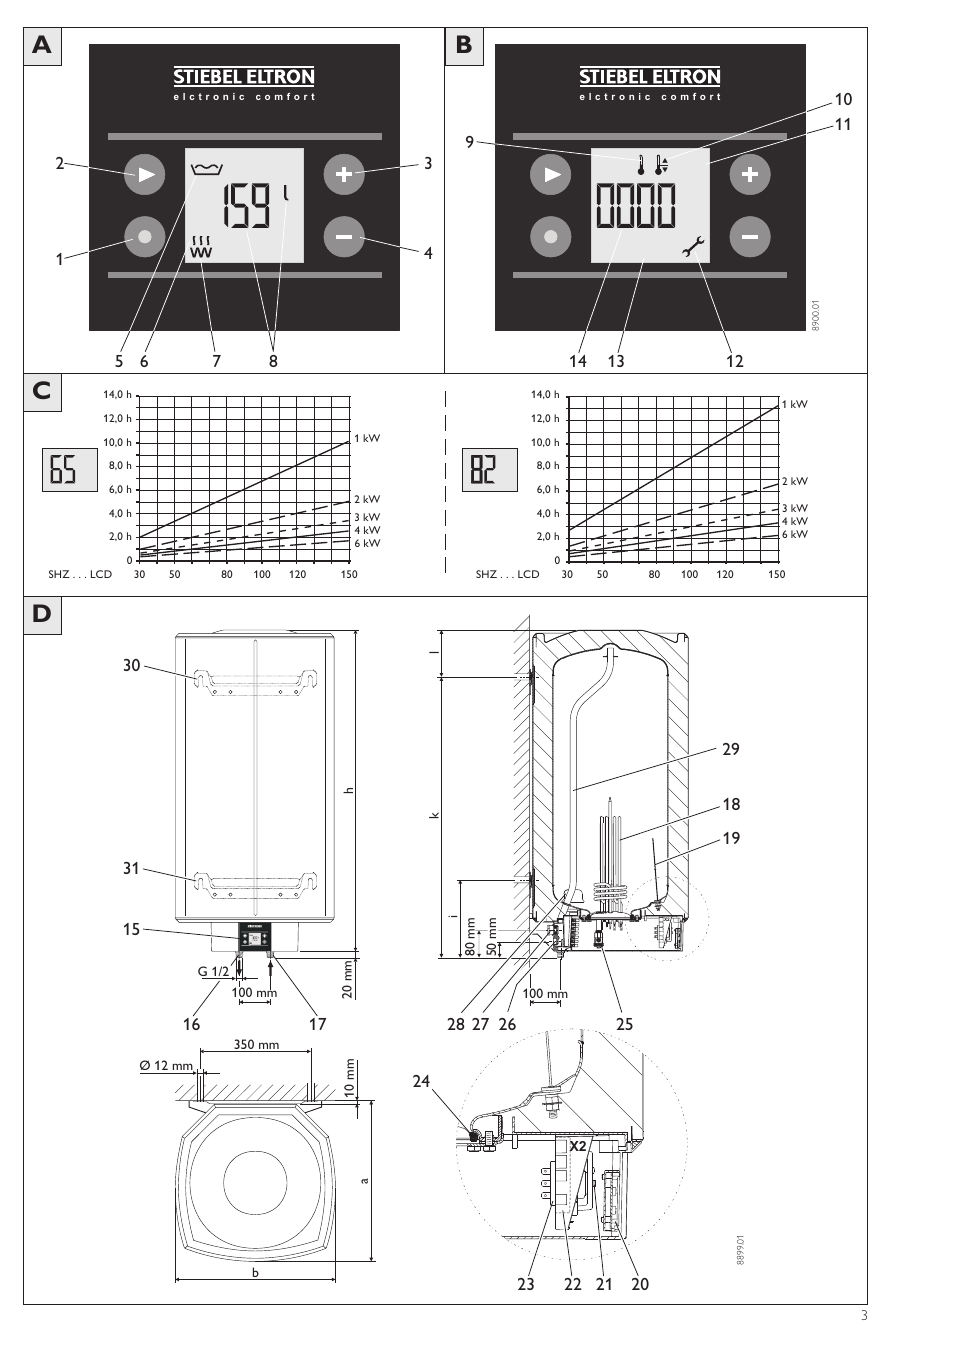 stiebel eltron shz 100 lcd user manual page 3 44 also for shz 30 lcd shz 50 lcd shz 80. Black Bedroom Furniture Sets. Home Design Ideas